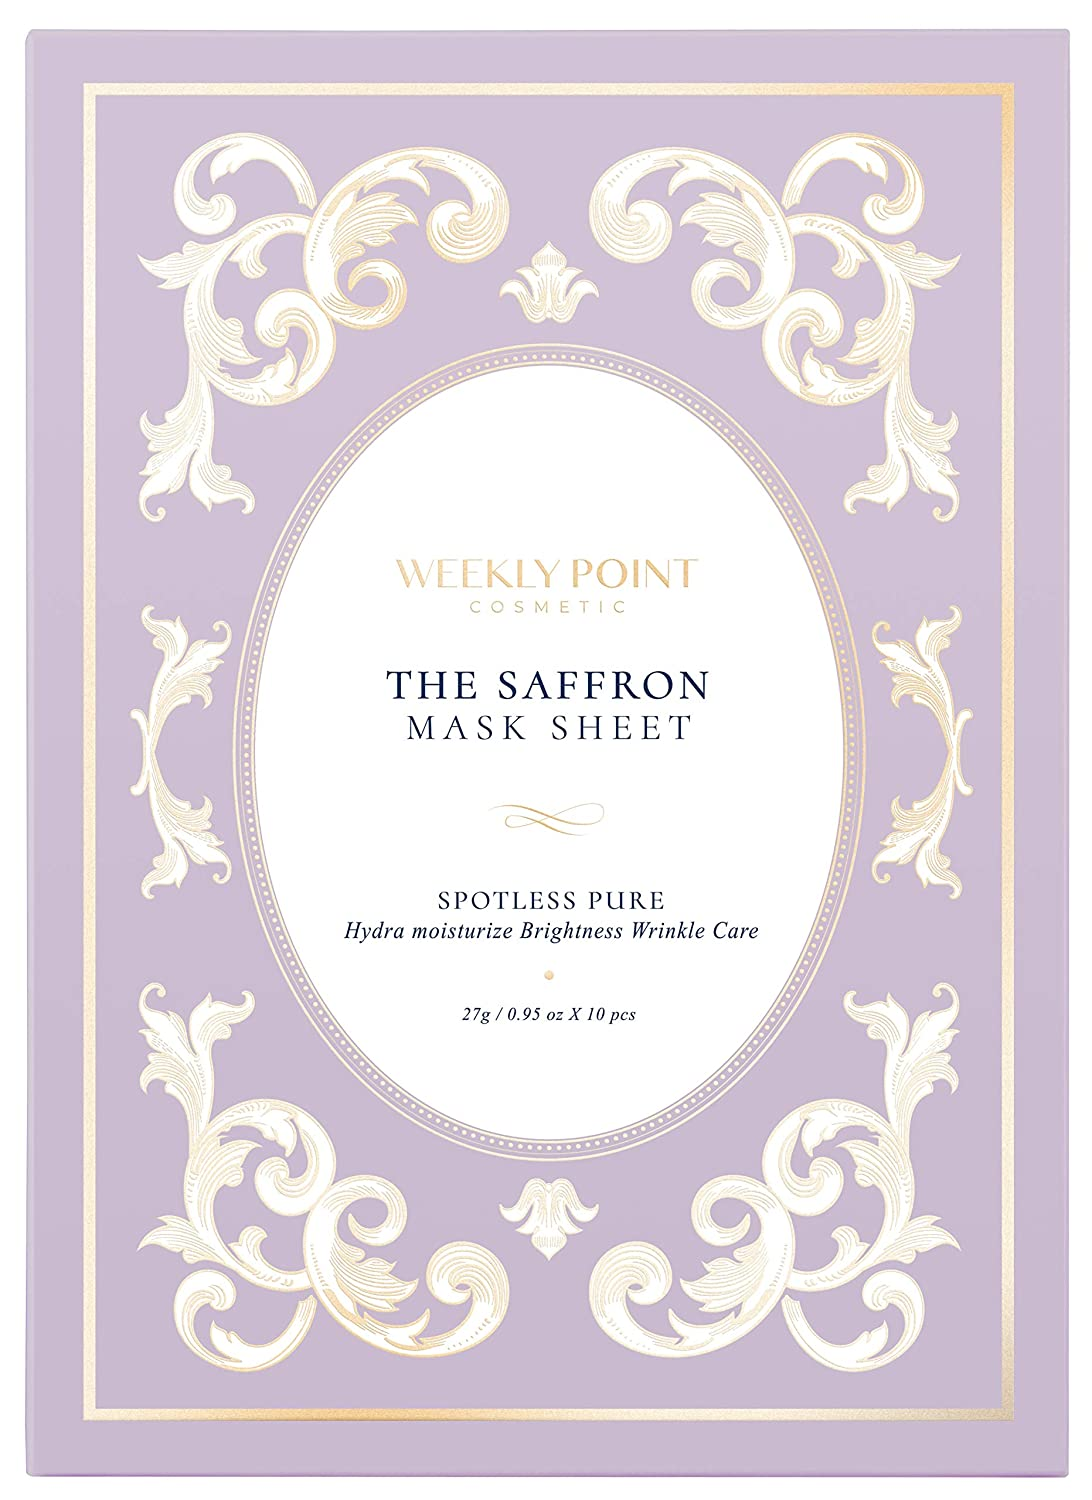 [Weekly Point Cosmetic The Saffron] - Facial mask sheet (10pcs in 1pack)